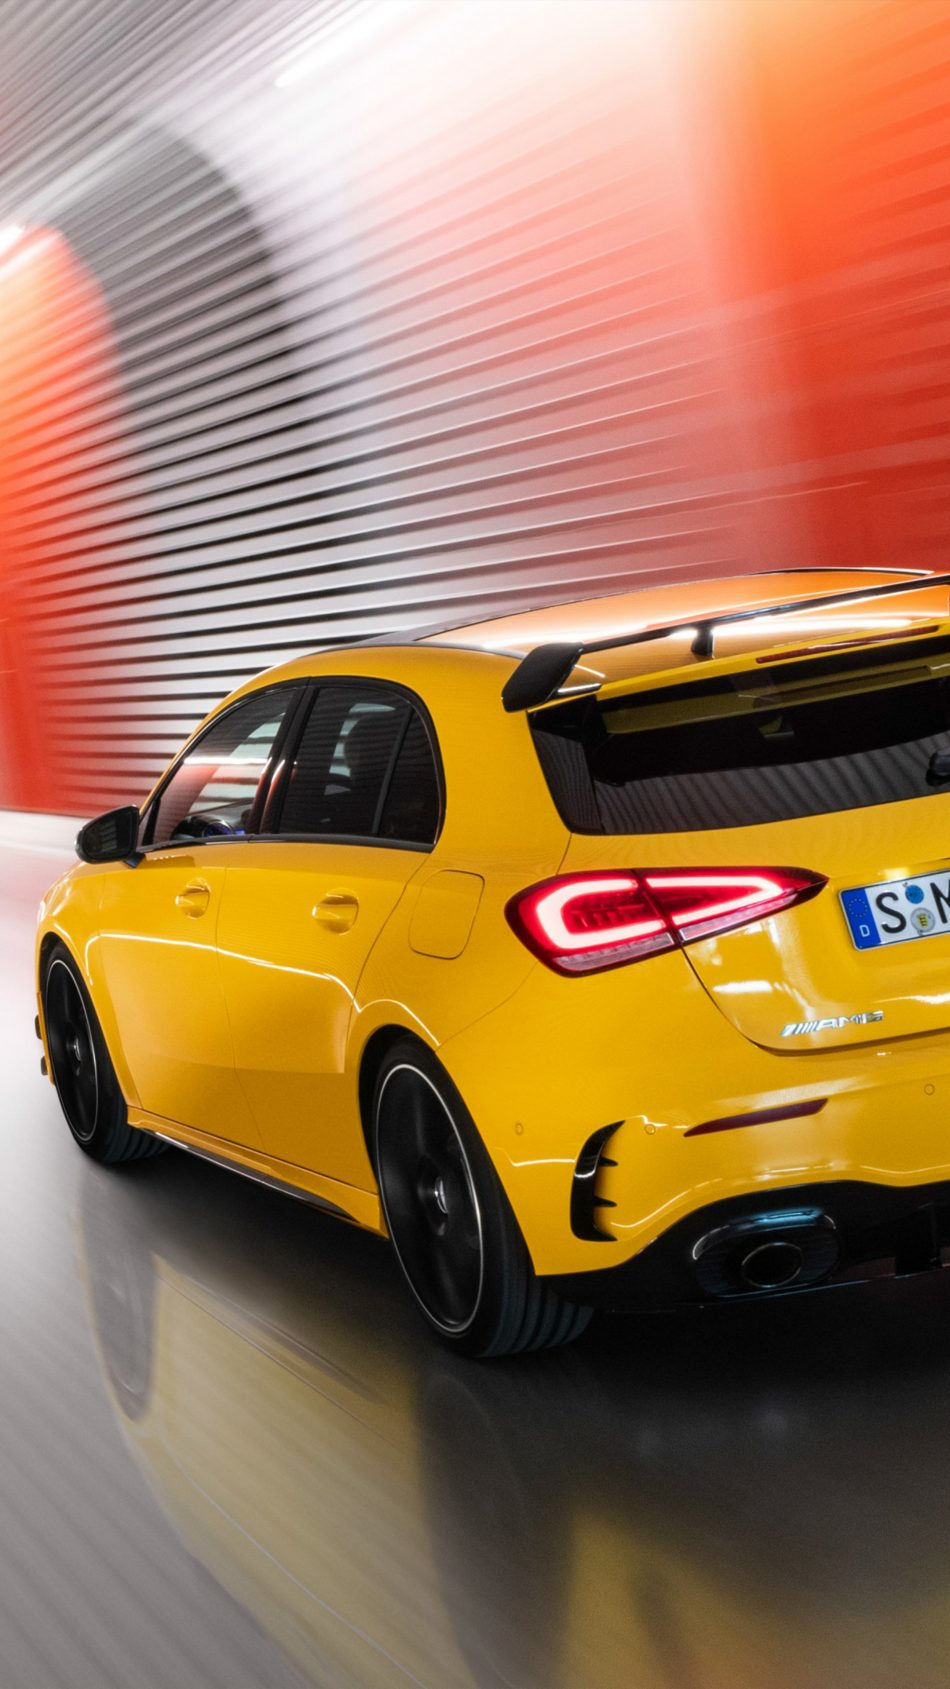 Download Mercedes Benz A35 Amg 4matic Free Pure 4k Ultra Hd Mobile